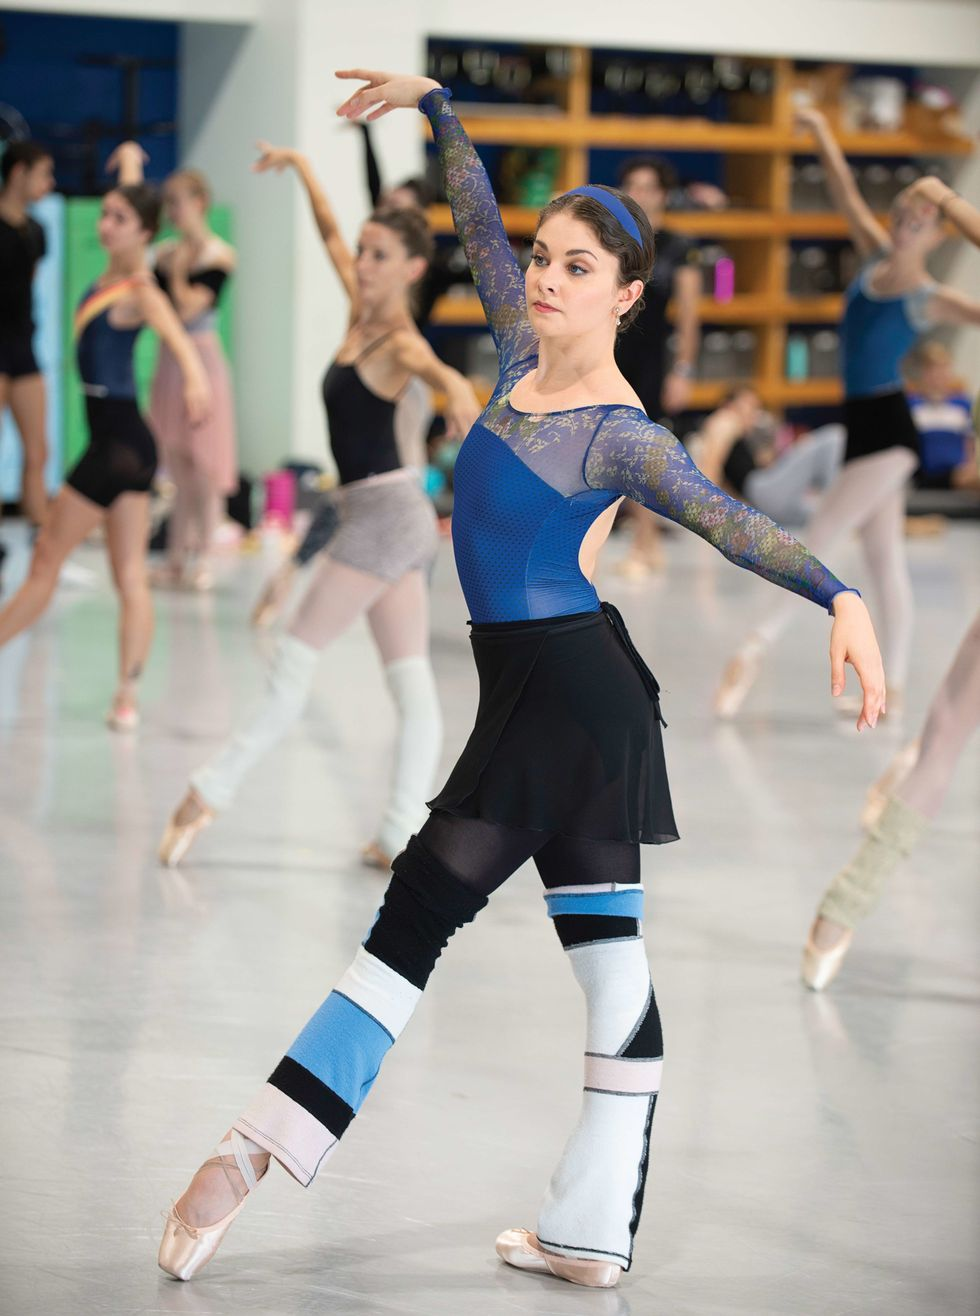 Morgan, in a blue leotard, black tights and skirt and color blocked legwarmers stands in a tendu front in class, with a serious expression on her face.